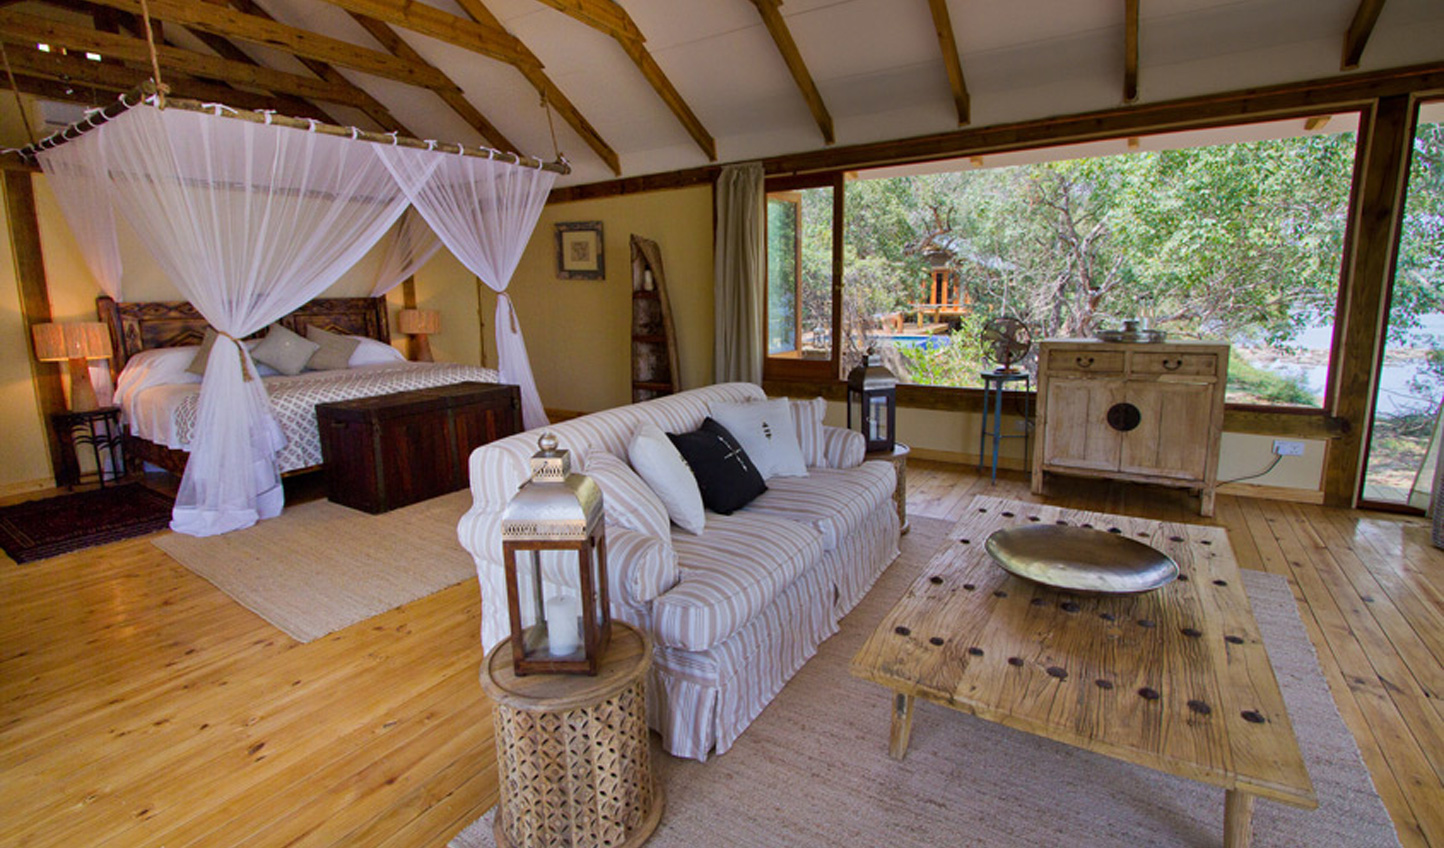 Luxurious rooms right on the edge of the Zambezi River